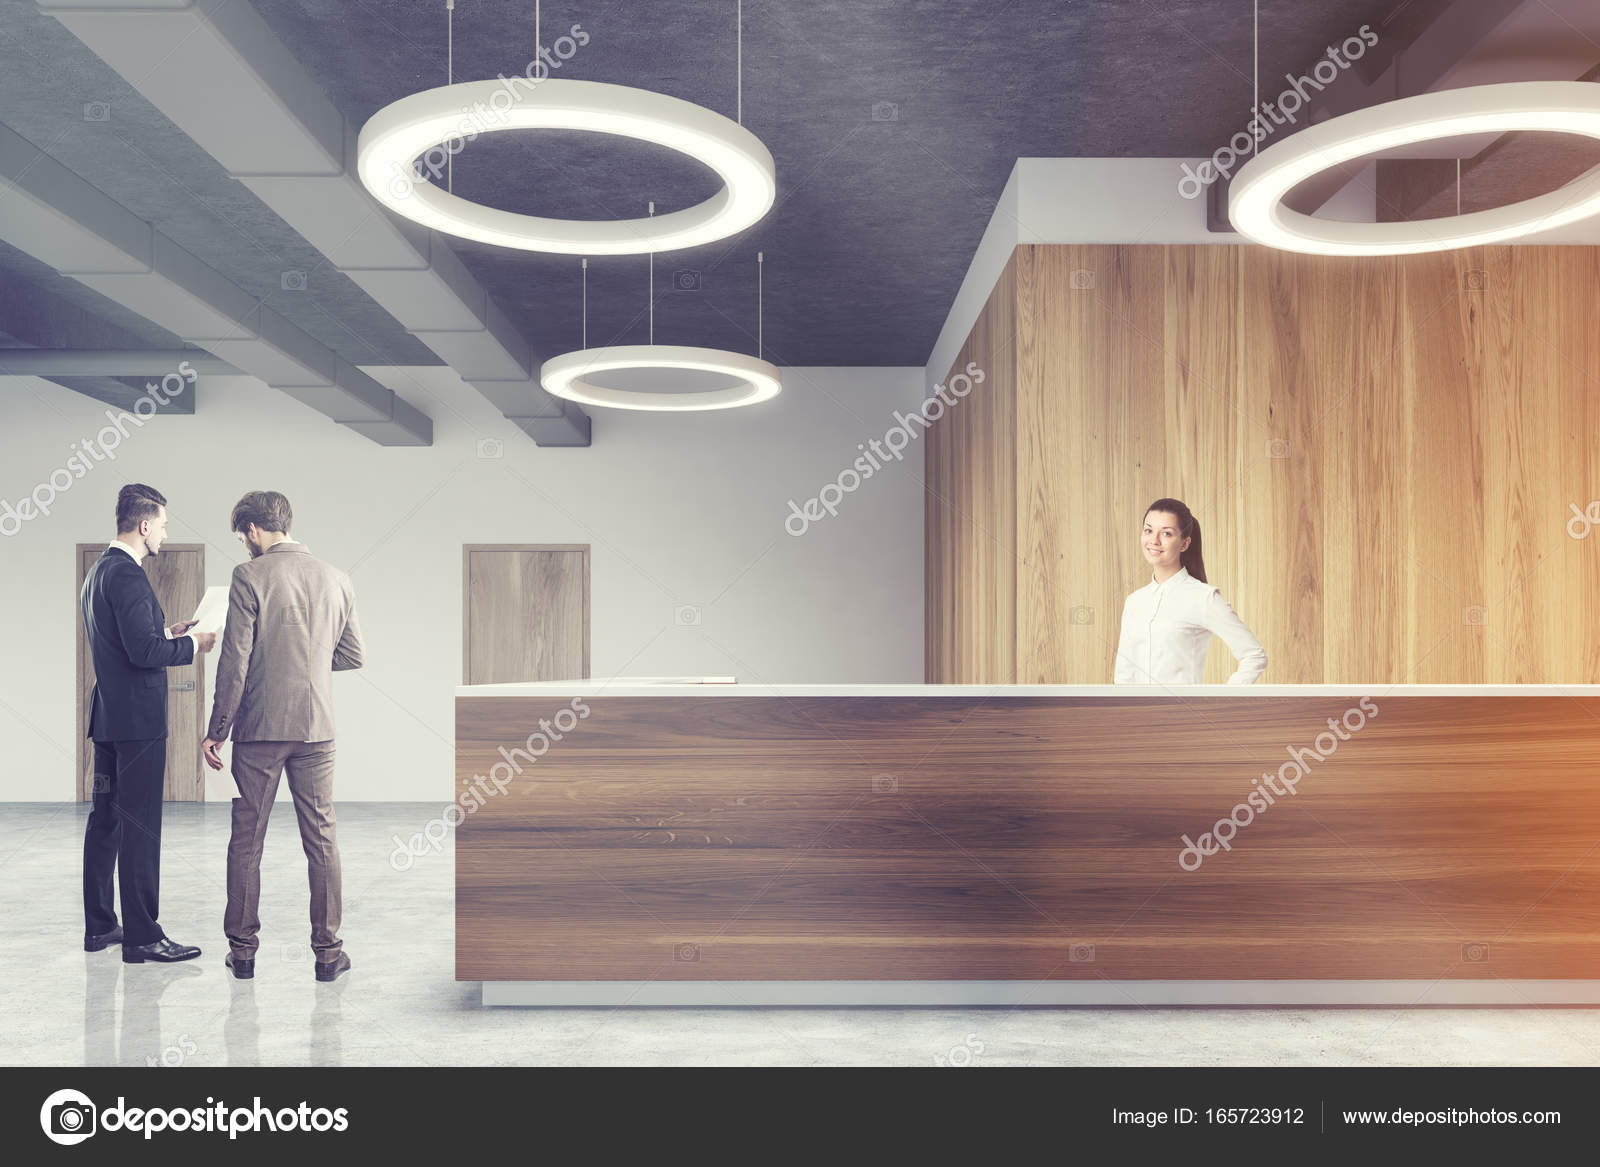 office ceiling lamps. Front View Of A Wooden Reception Desk Standing In Modern Office With Concrete Floor, Light And Gray Walls Round Ceiling Lamps. People. Lamps X